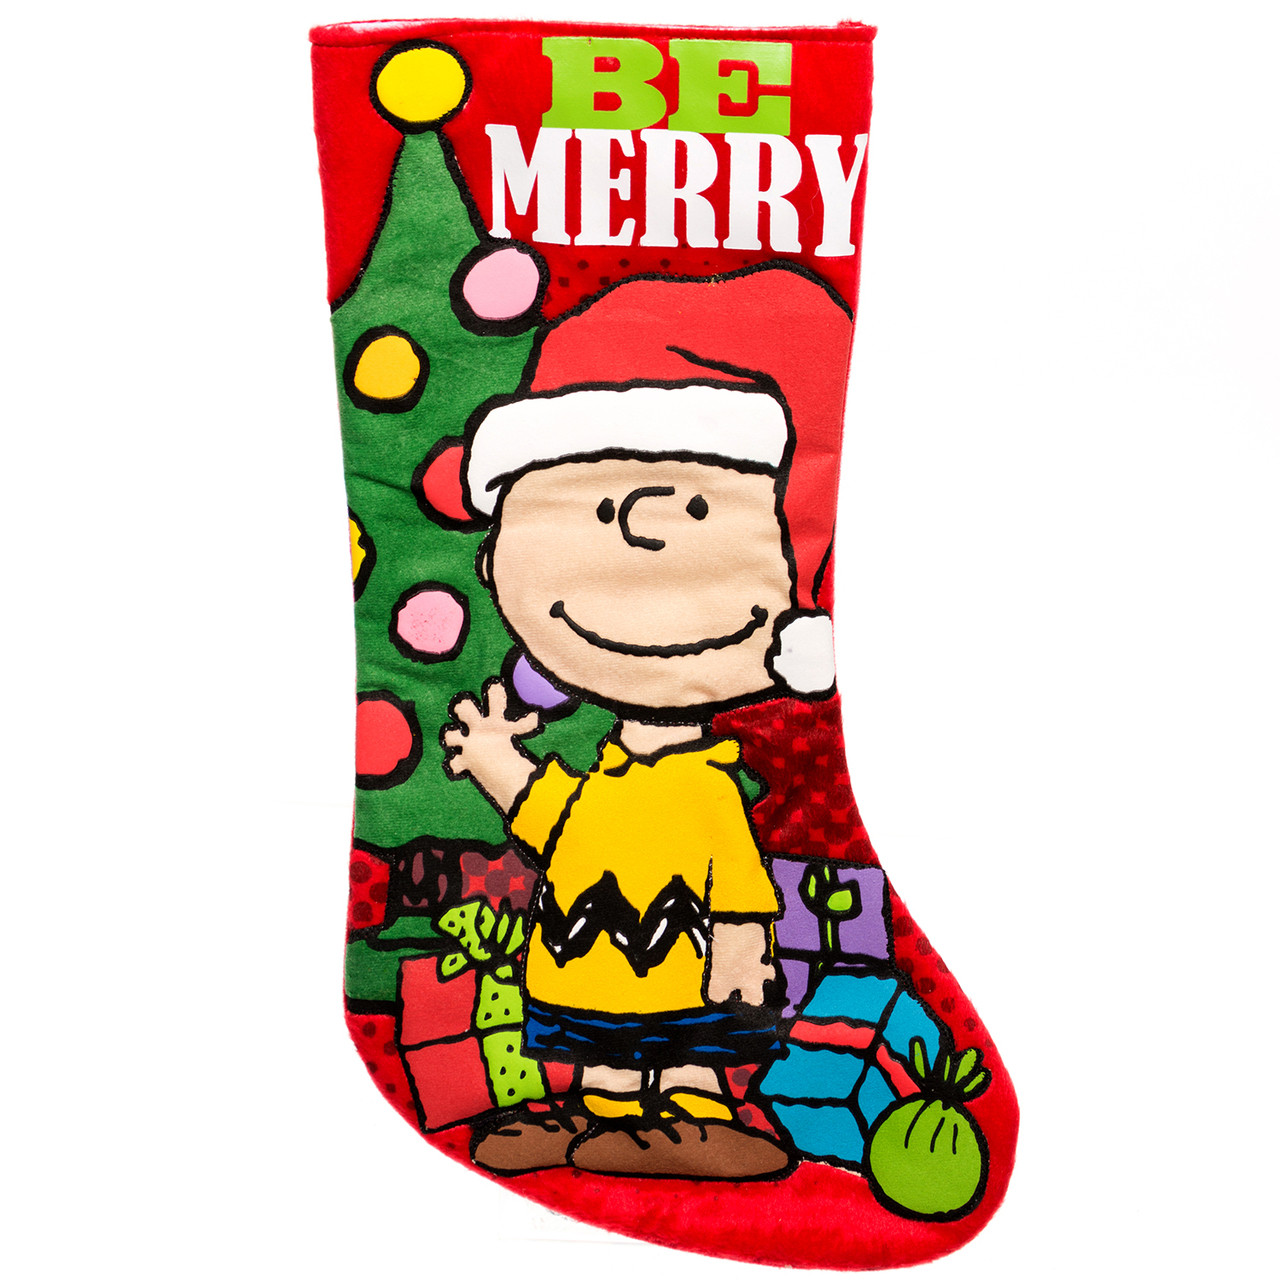 Charlie brown and snoopy peanuts christmas stockings retrofestive be merry charlie brown christmas stocking voltagebd Image collections